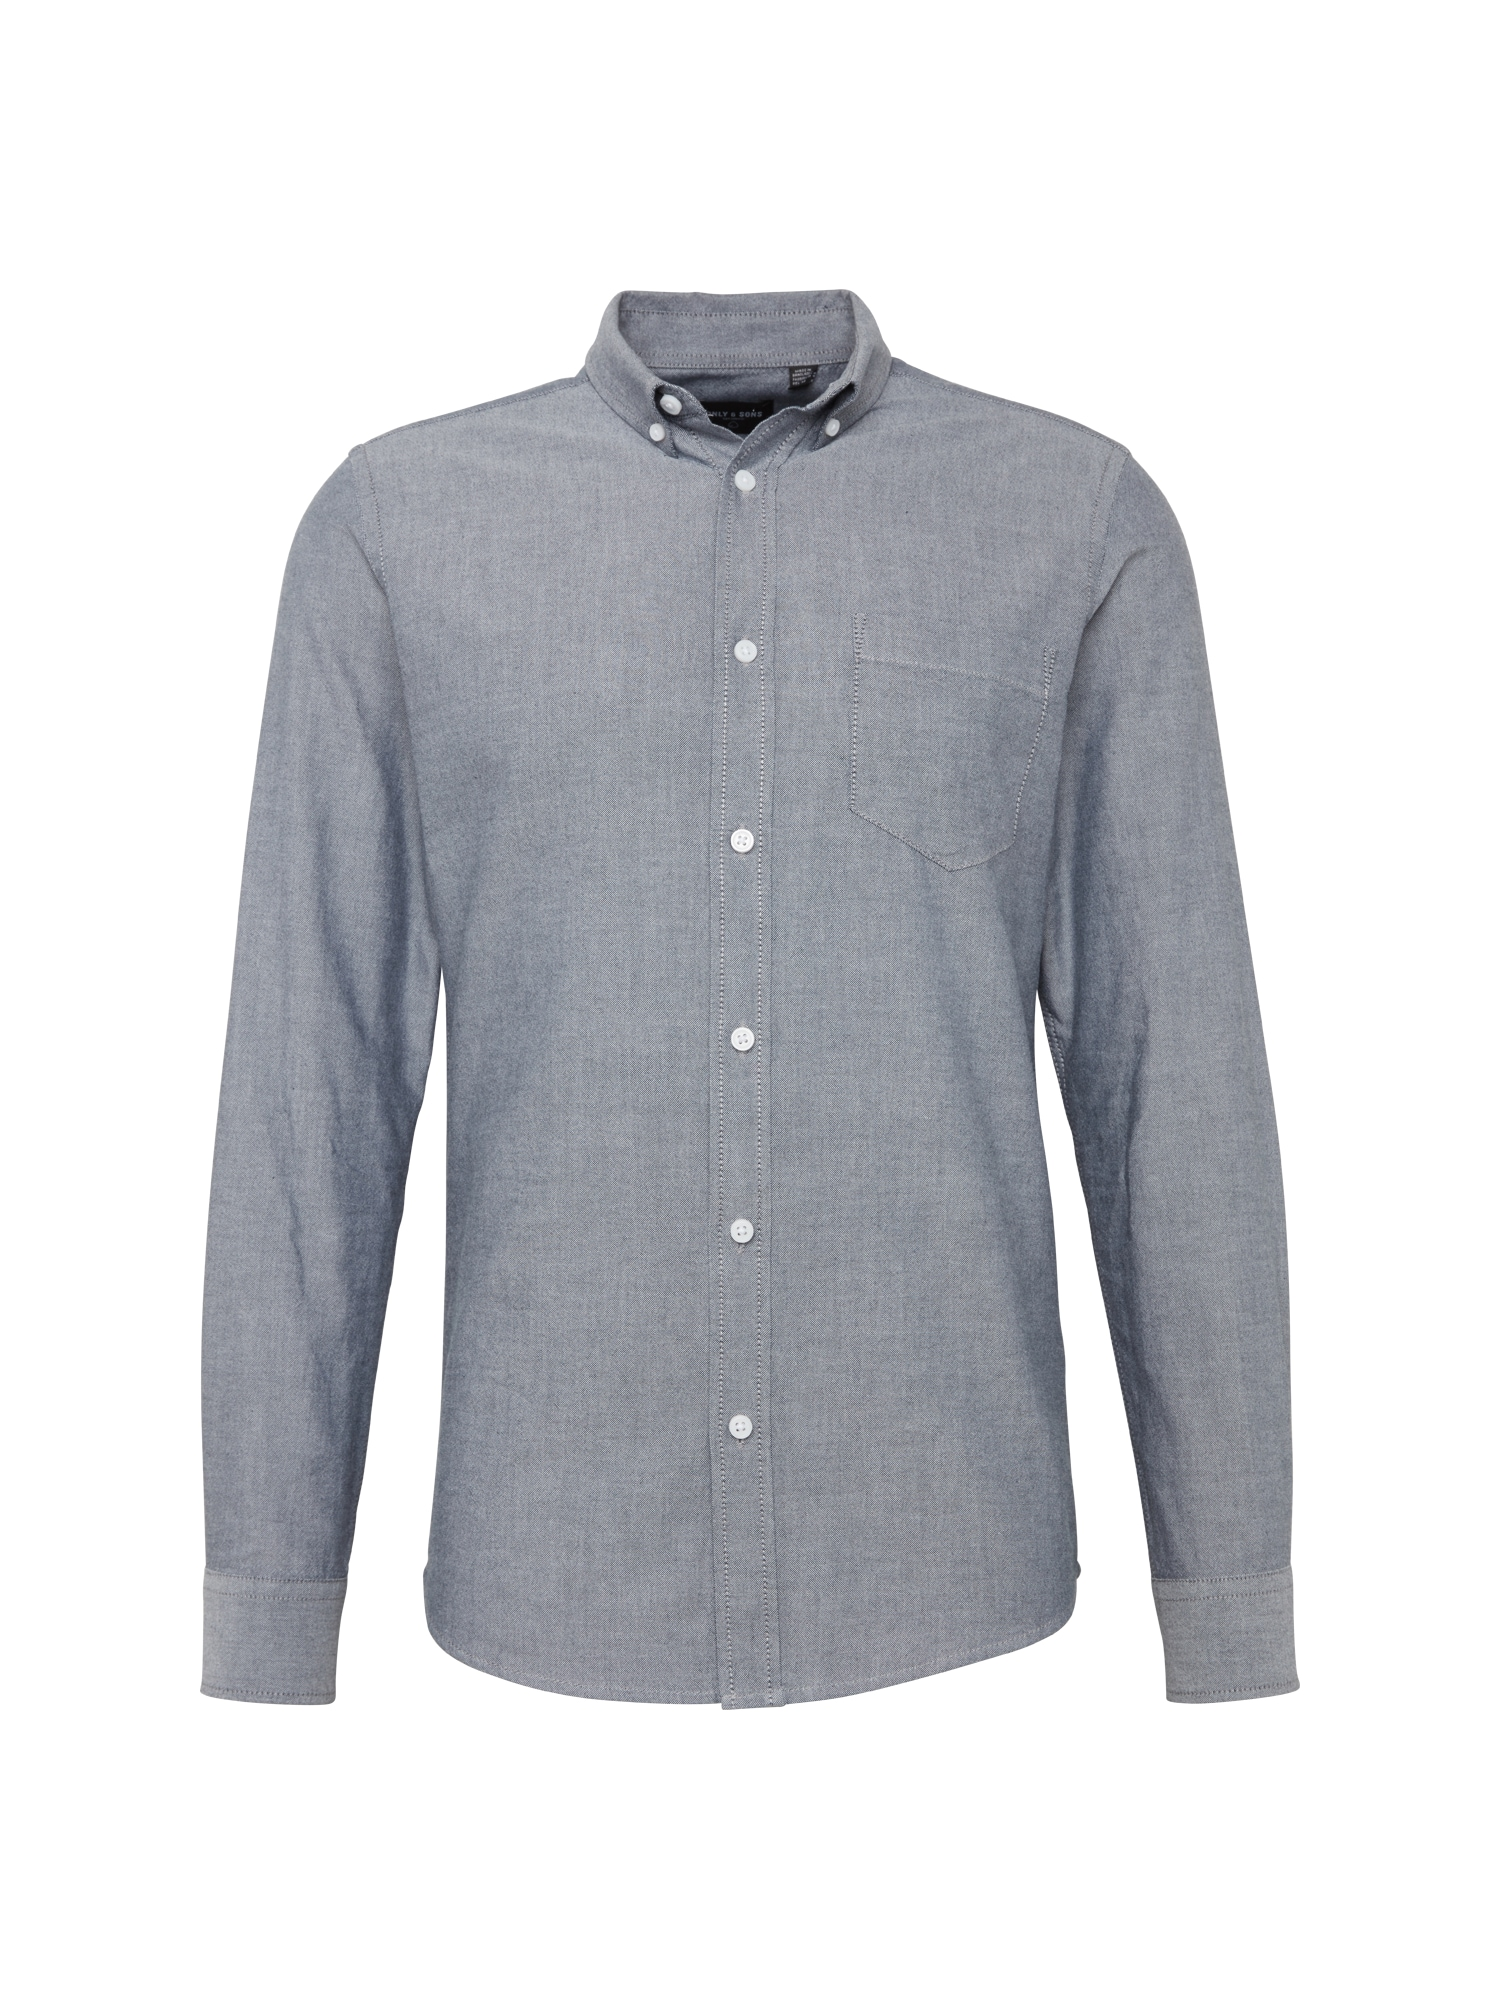 Košile ALVARO LS OXFORD SHIRT NOOS šedá Only & Sons